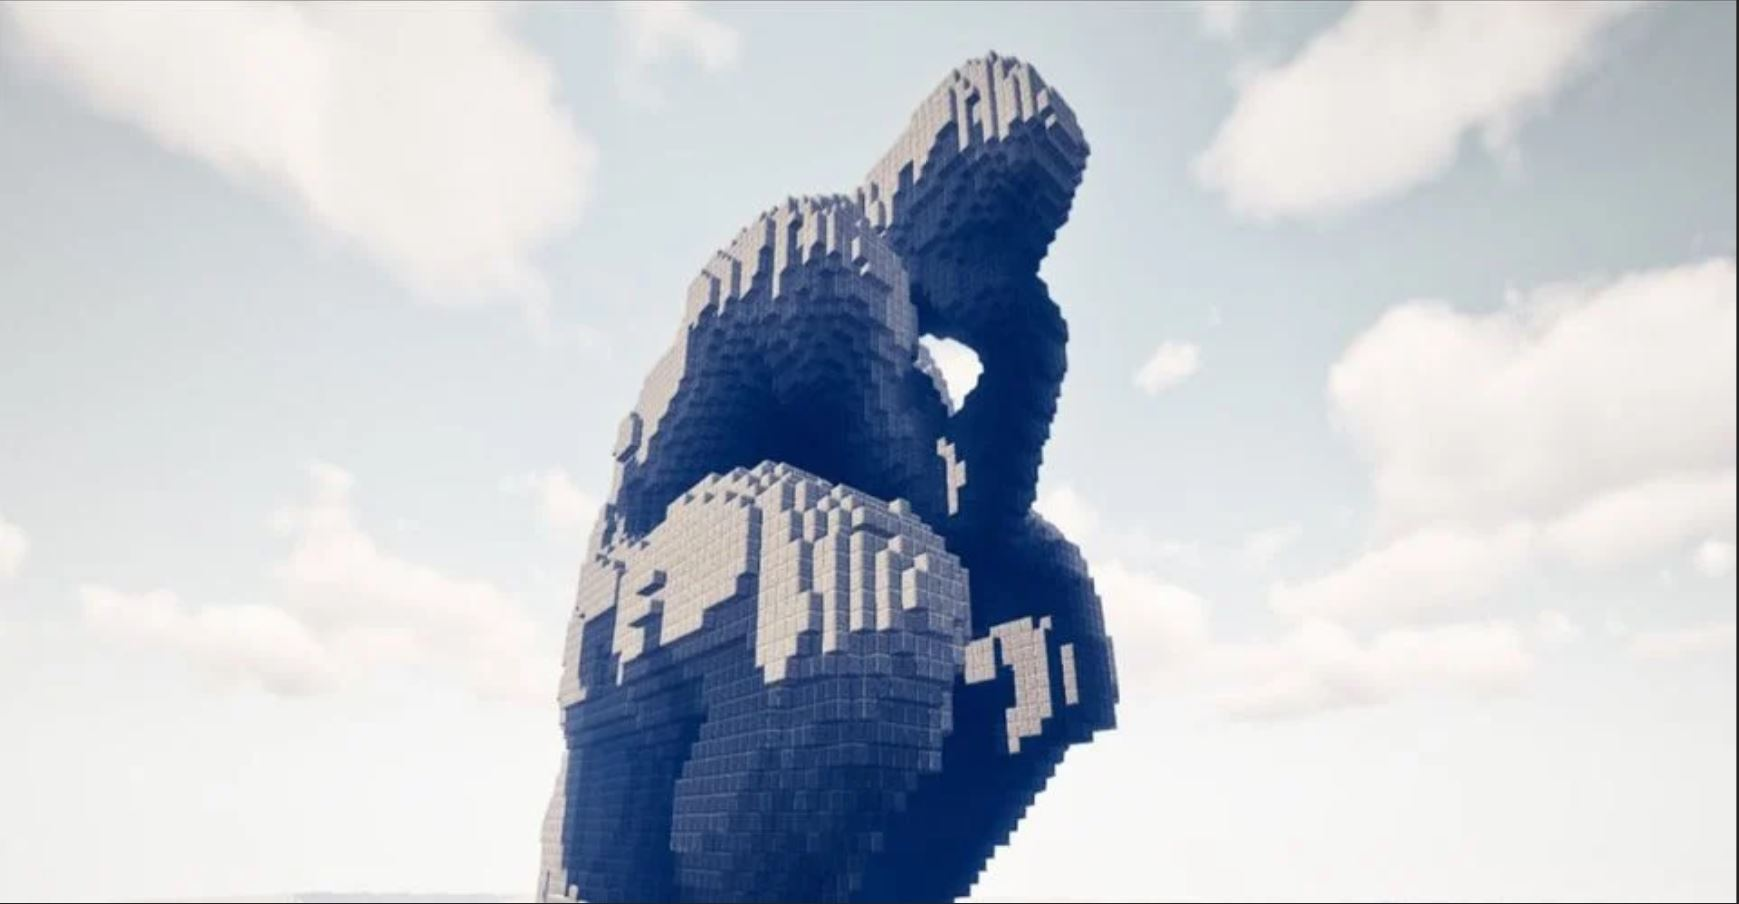 Talented Minecraft Player Recreates The Thinker From A Massive Stone Blocks